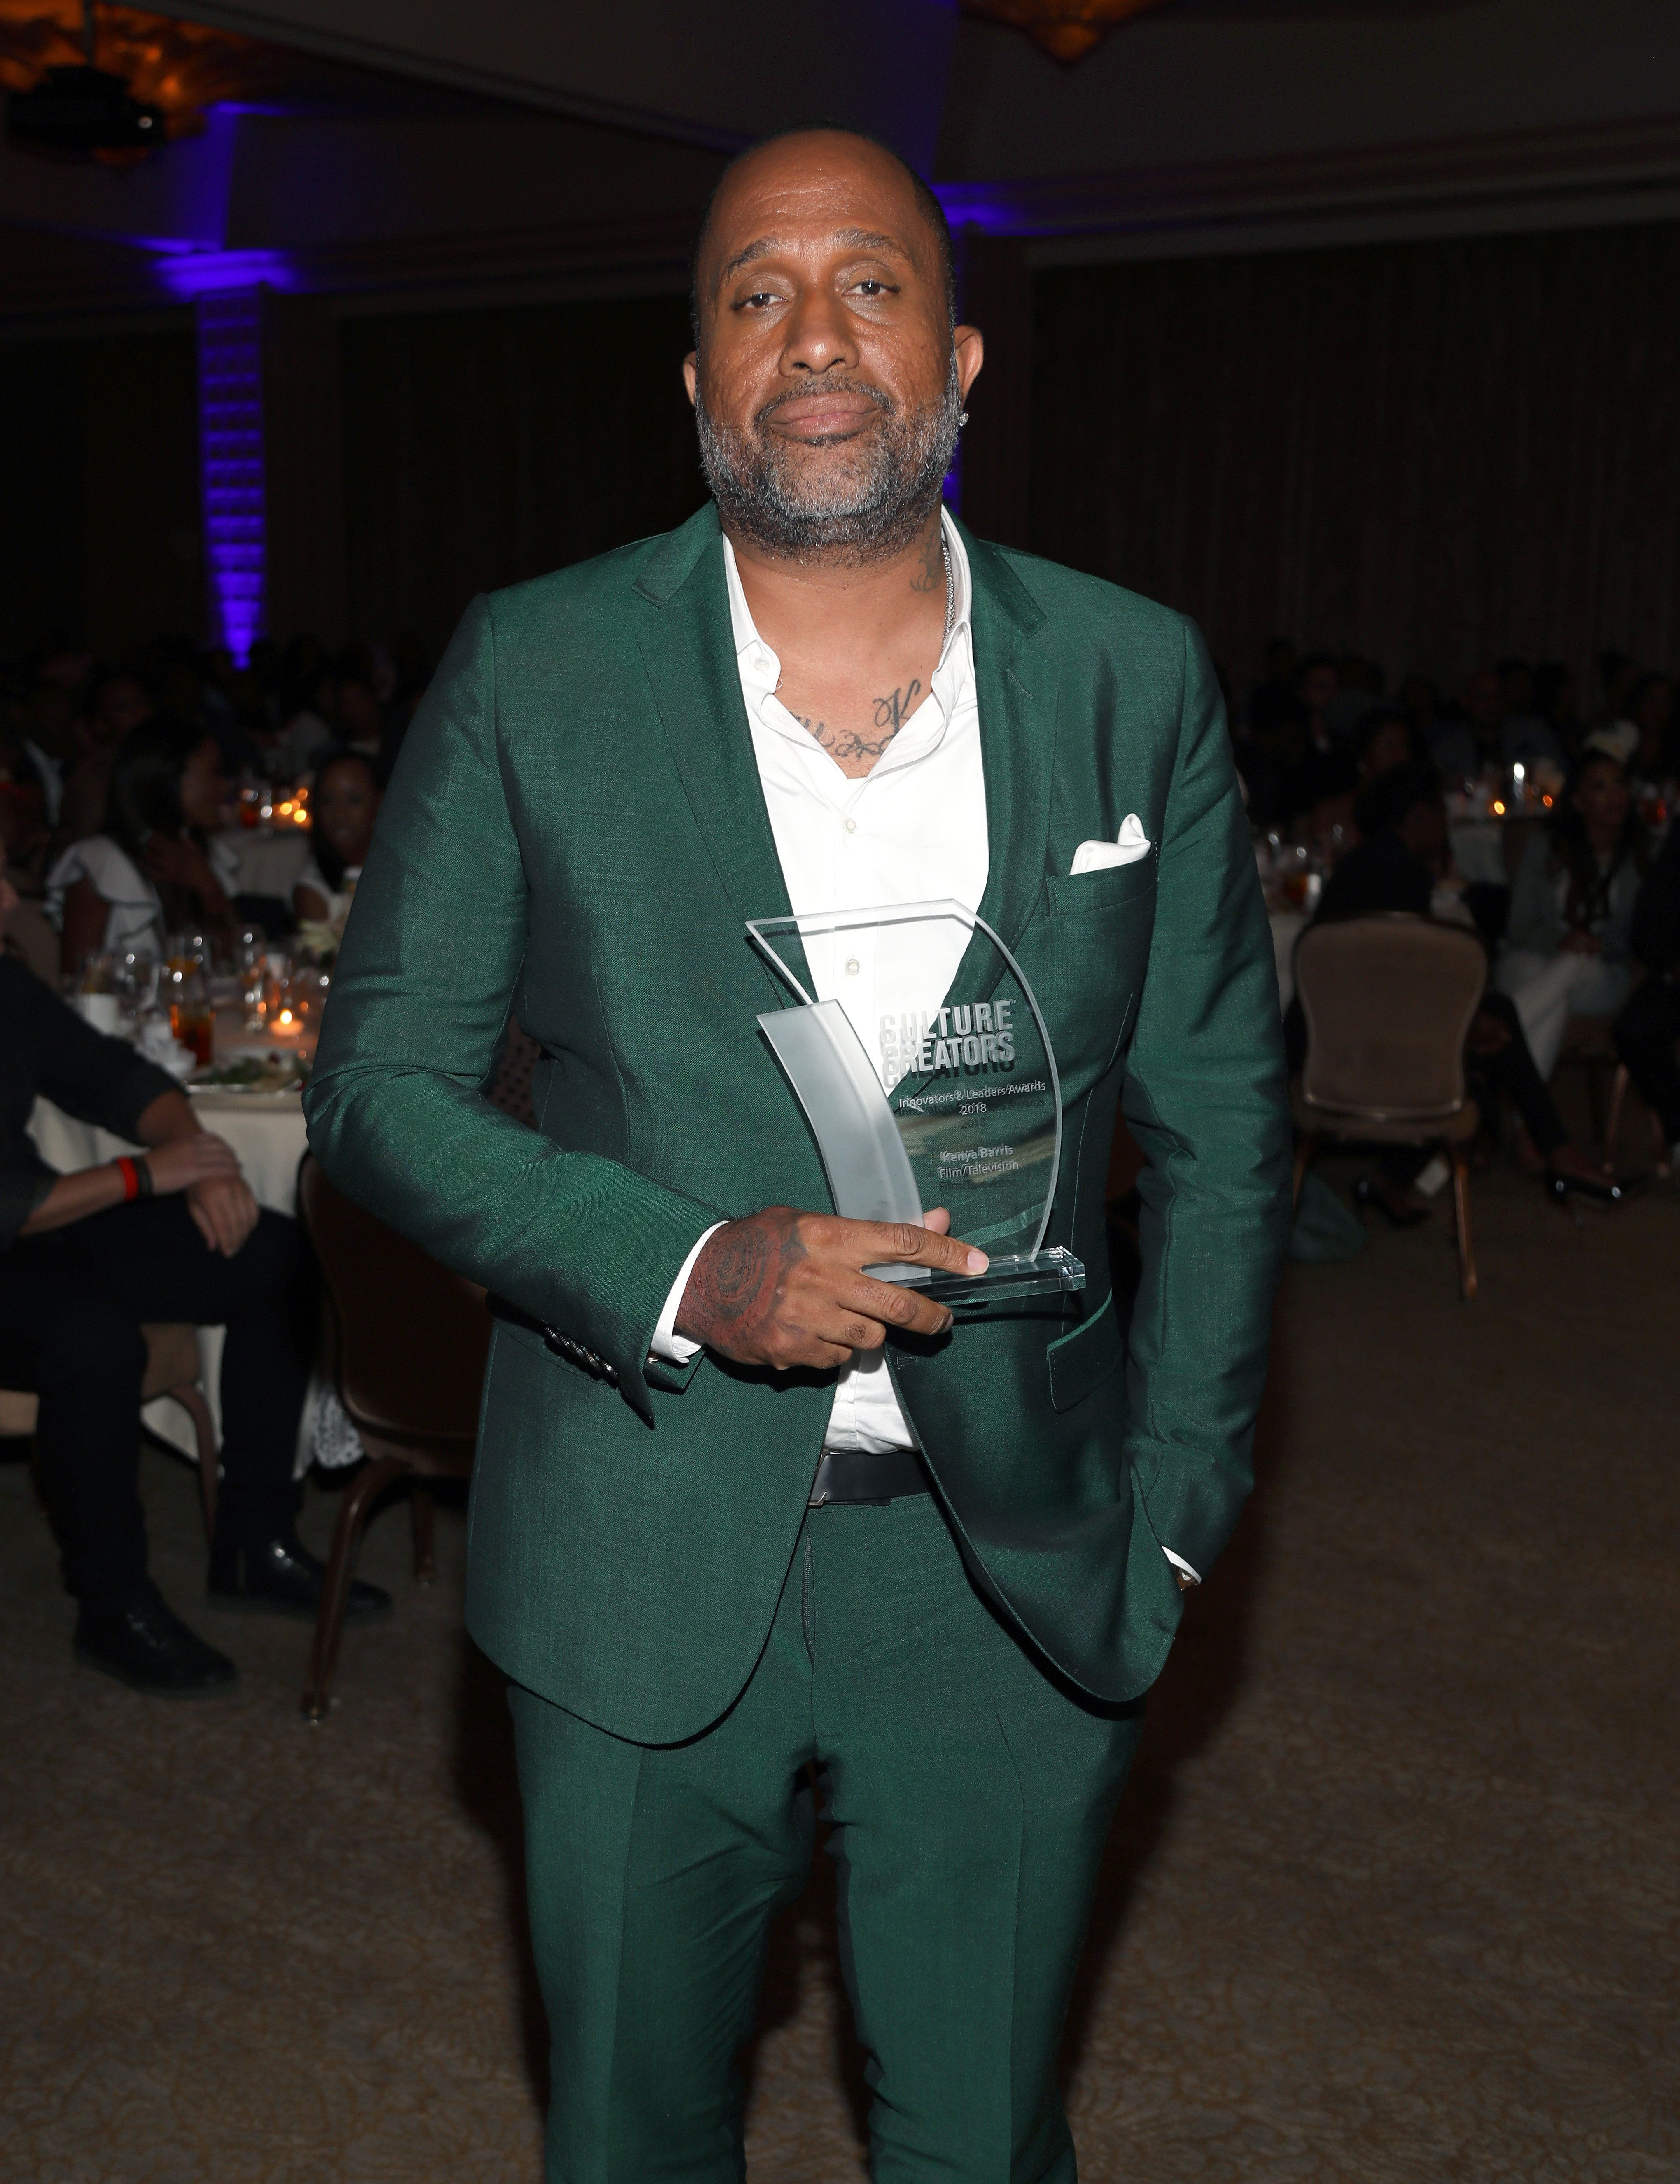 BEVERLY HILLS, CA - JUNE 22:  Kenya Barris poses with his award during Culture Creators Leaders and Innovators Awards Brunch 2018 at The Beverly Hilton on June 22, 2018 in Beverly Hills, California.  (Photo by Jerritt Clark/Getty Images for Culture Creators )